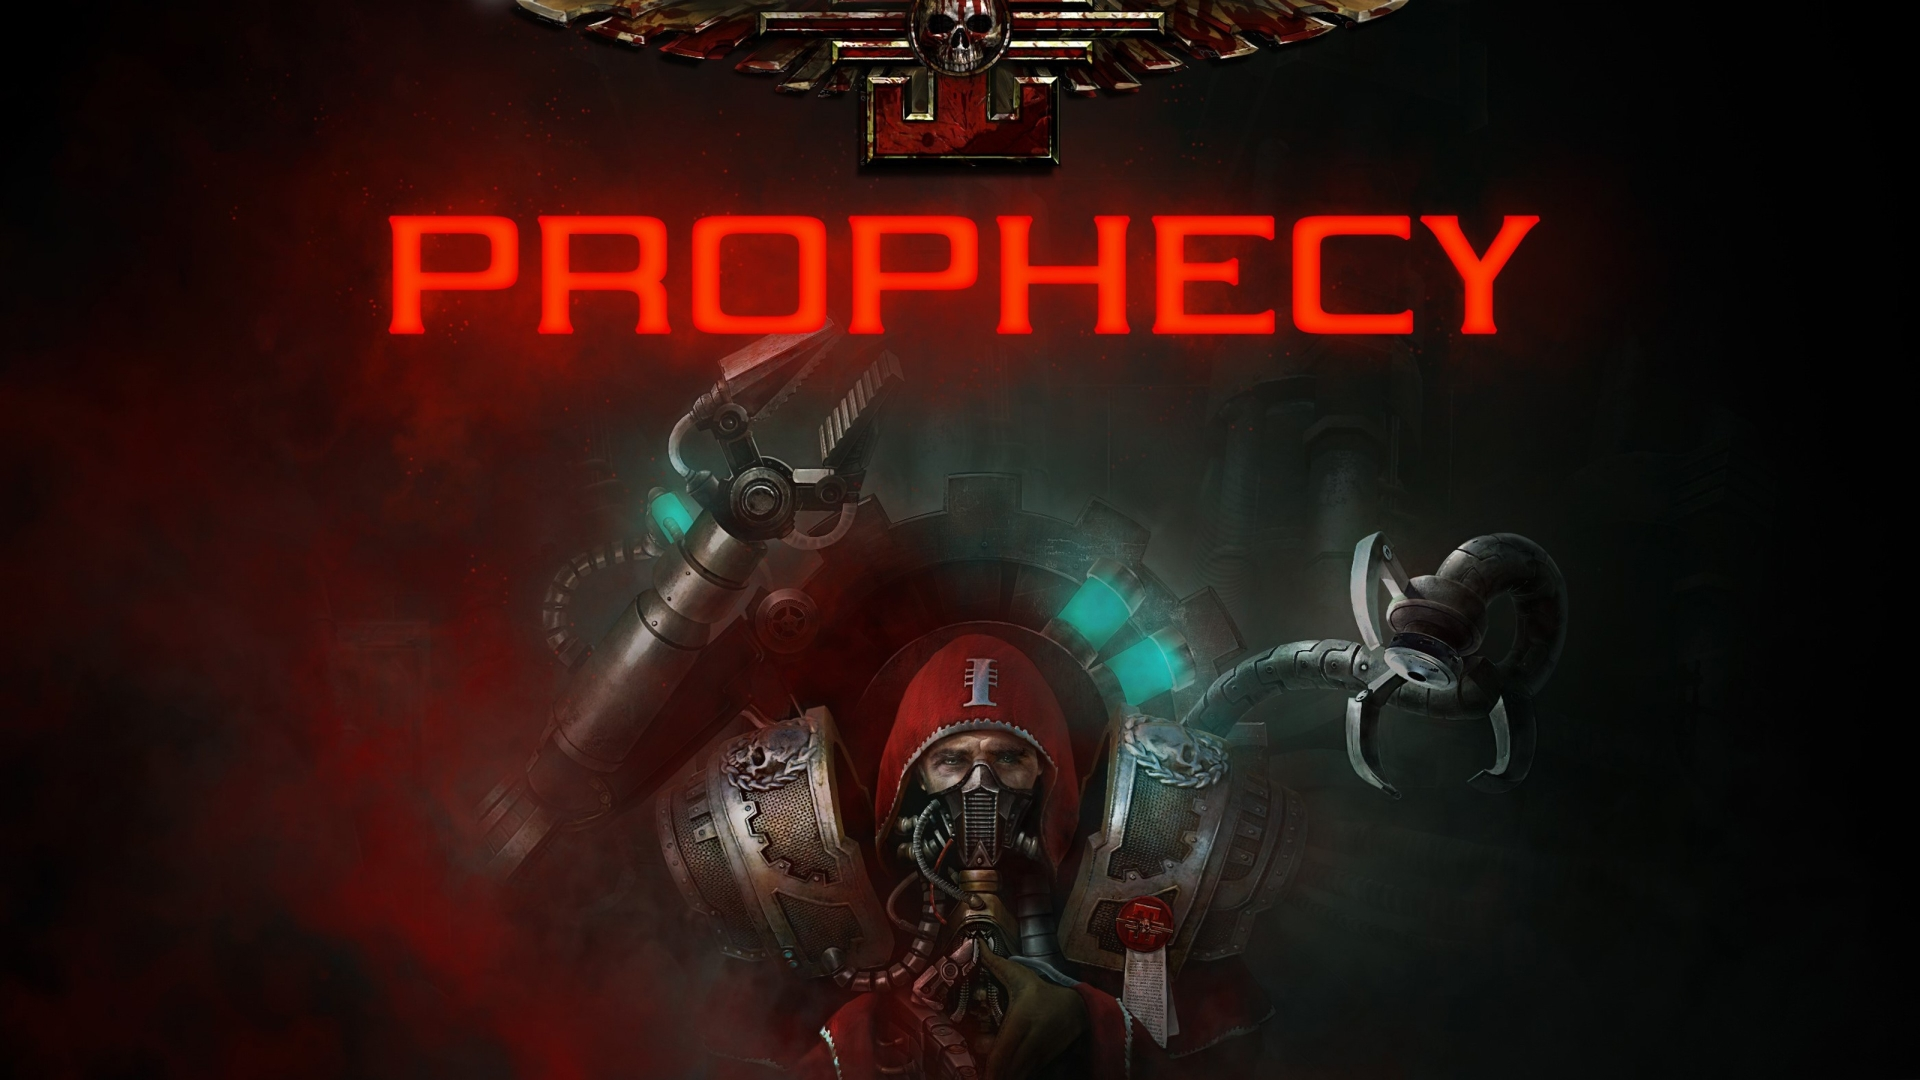 1920x1080 Prophecy Warhammer 40K Inquisitor 1080P Laptop Full HD 1920x1080